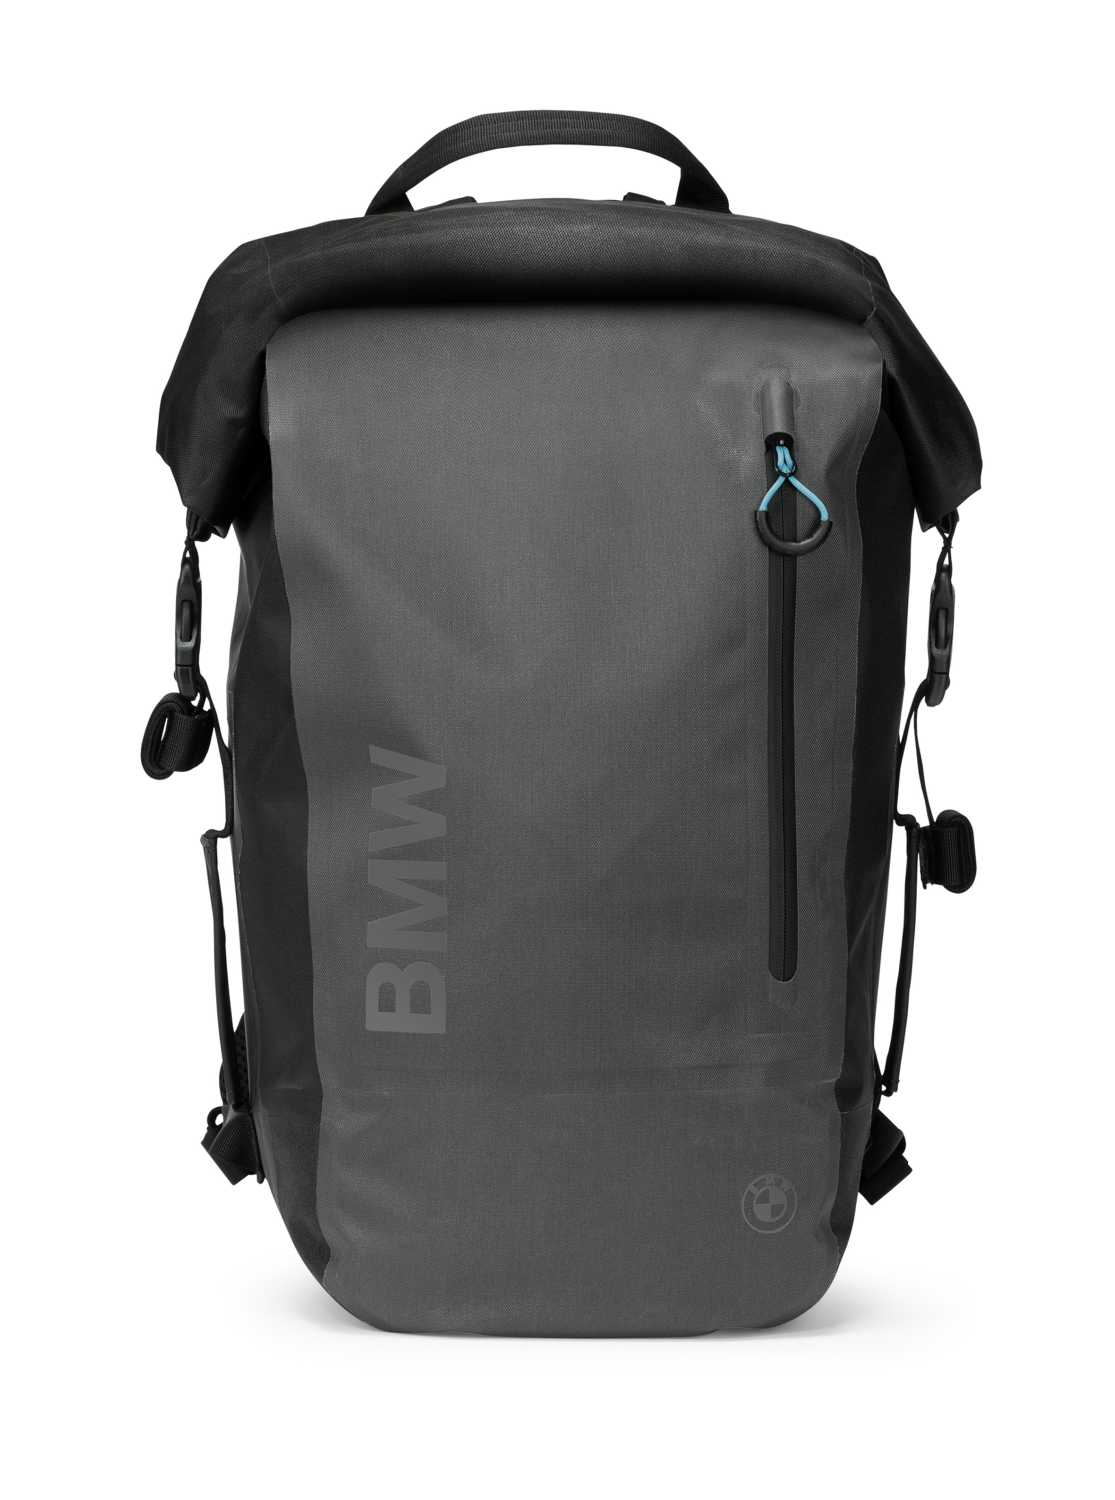 bmw functional luggage bmw rucksack 03 2015. Black Bedroom Furniture Sets. Home Design Ideas